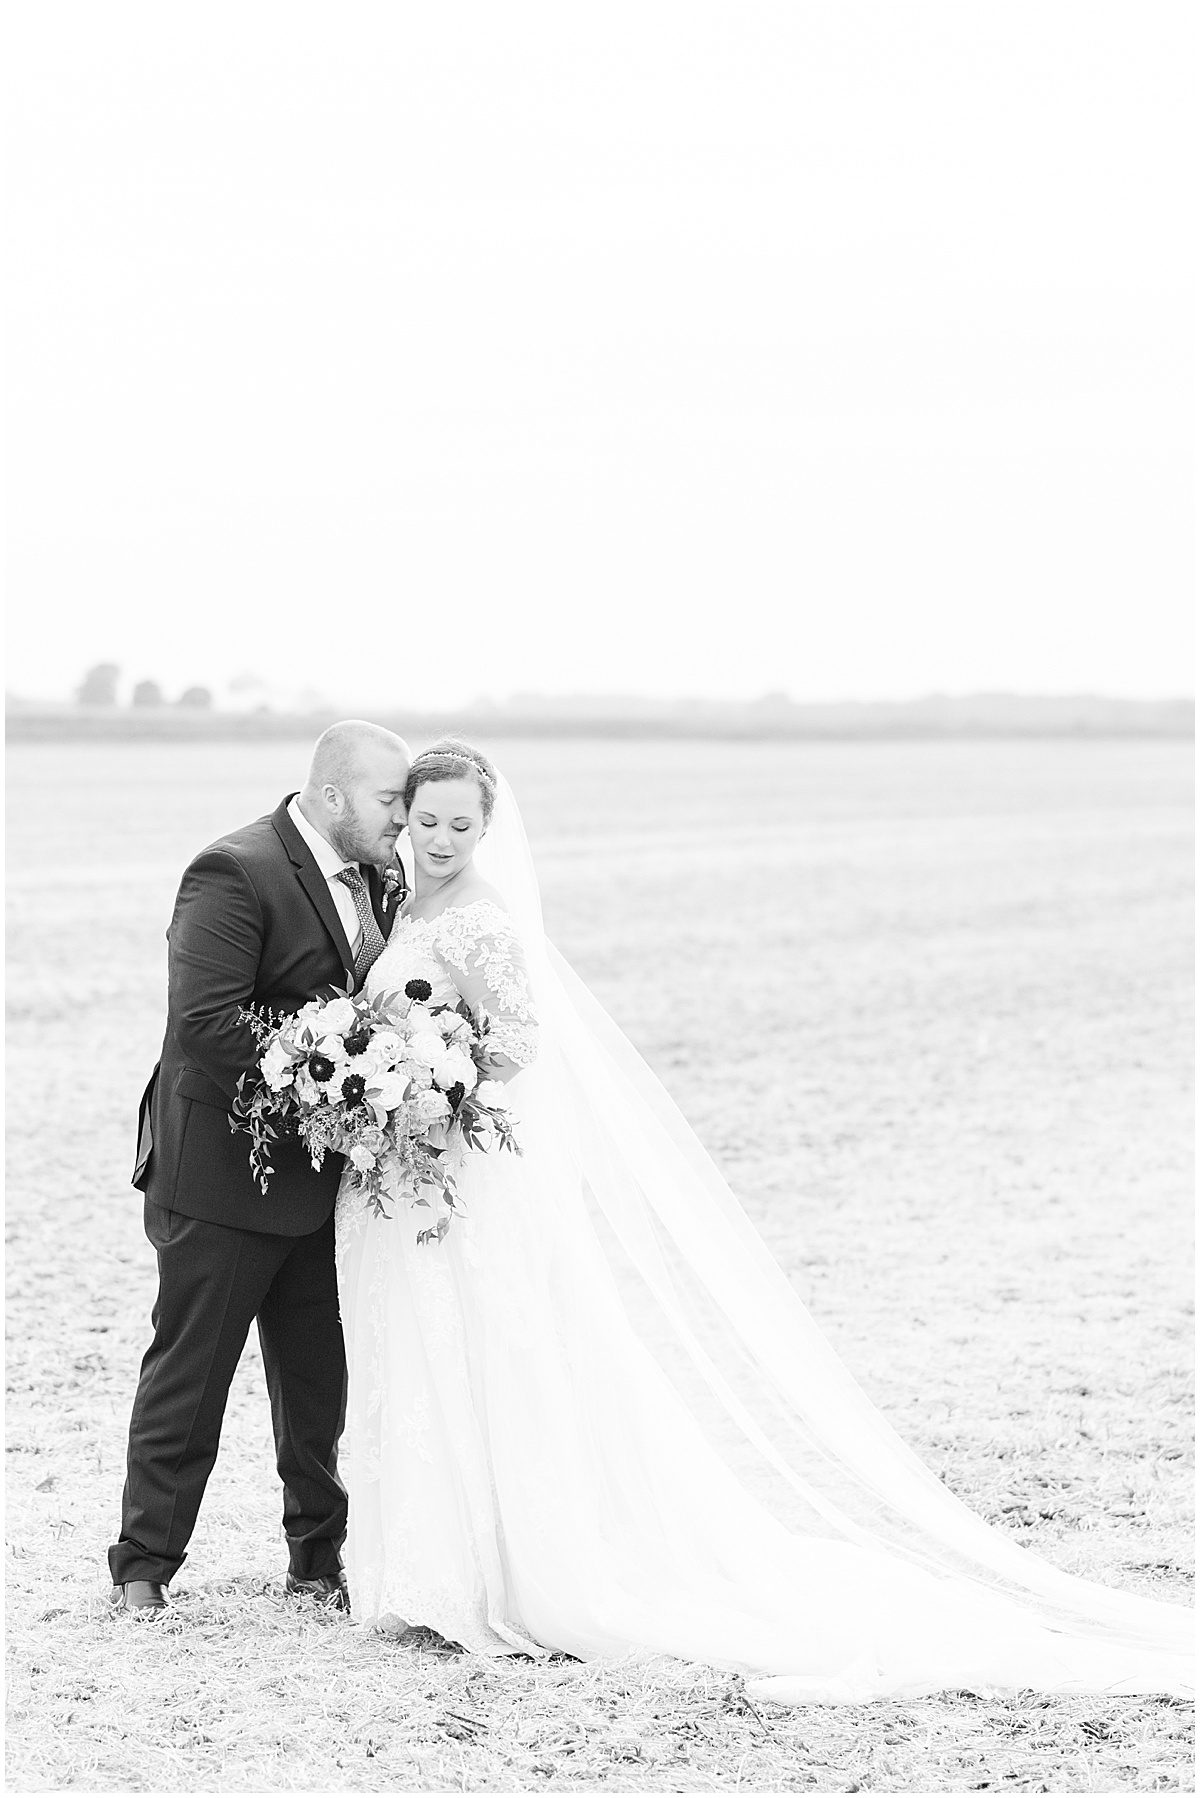 Bride and groom photos at Meadow Springs Manor wedding in Francesville, Indiana